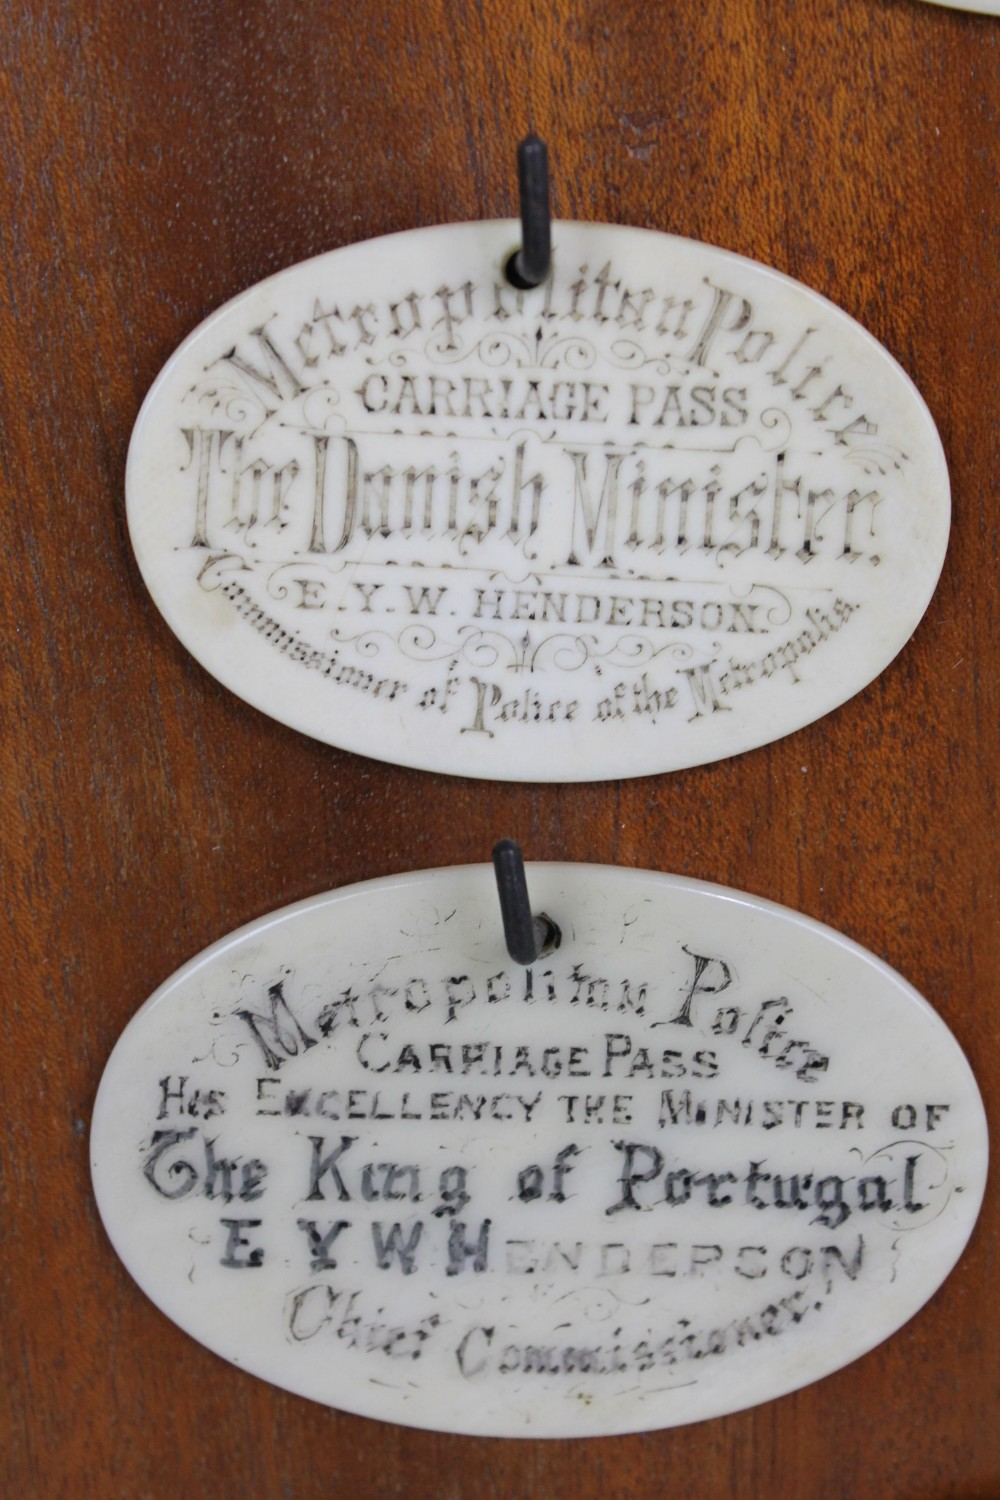 Lot 3 - An unusual group of six 19th century ivory carriage pass tokens, each inscribed for The Metropolitan